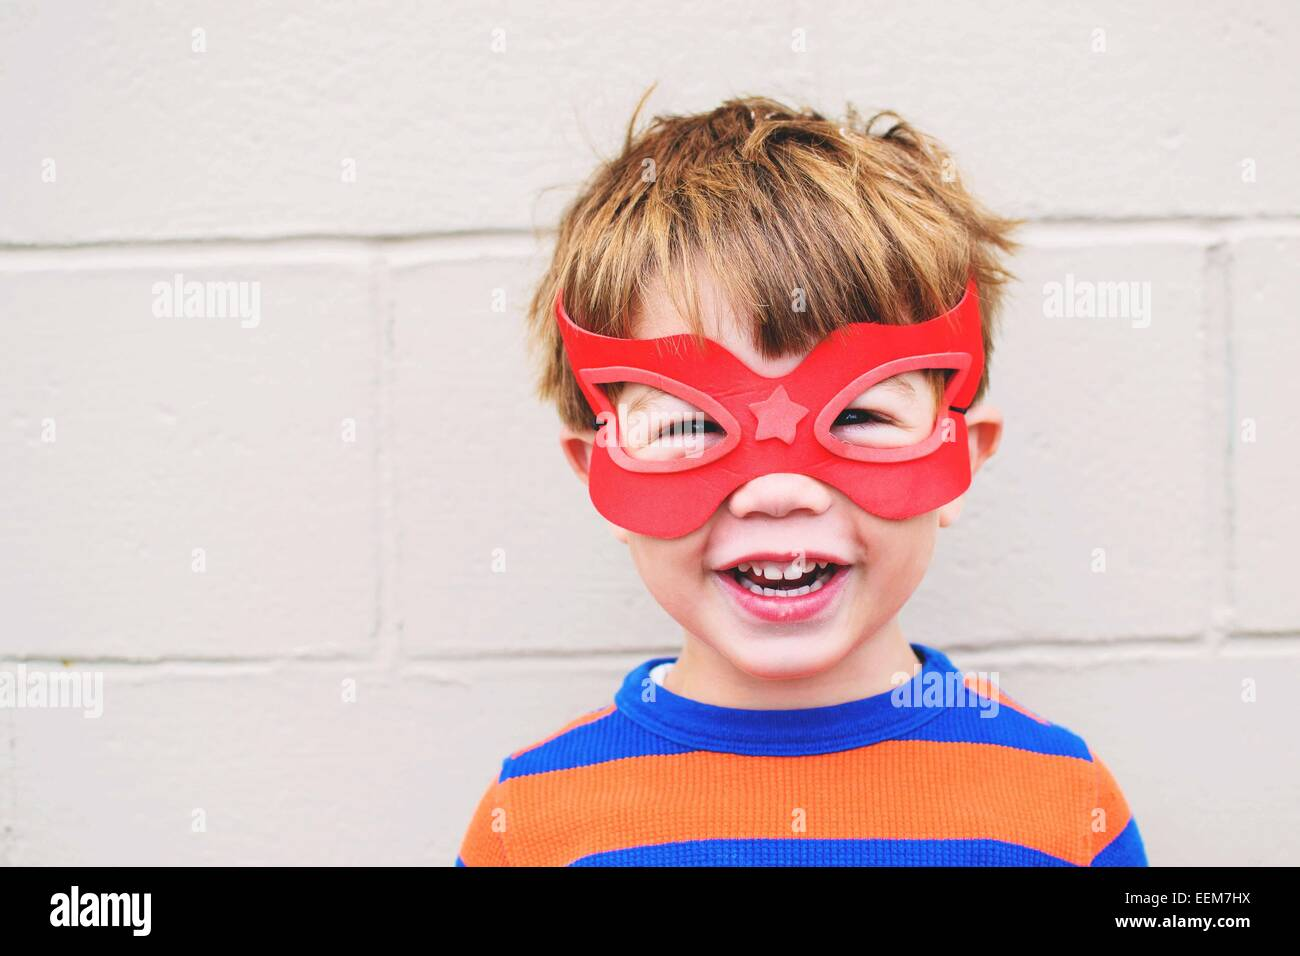 Young boy (2-3) smiling wearing super hero mask - Stock Image